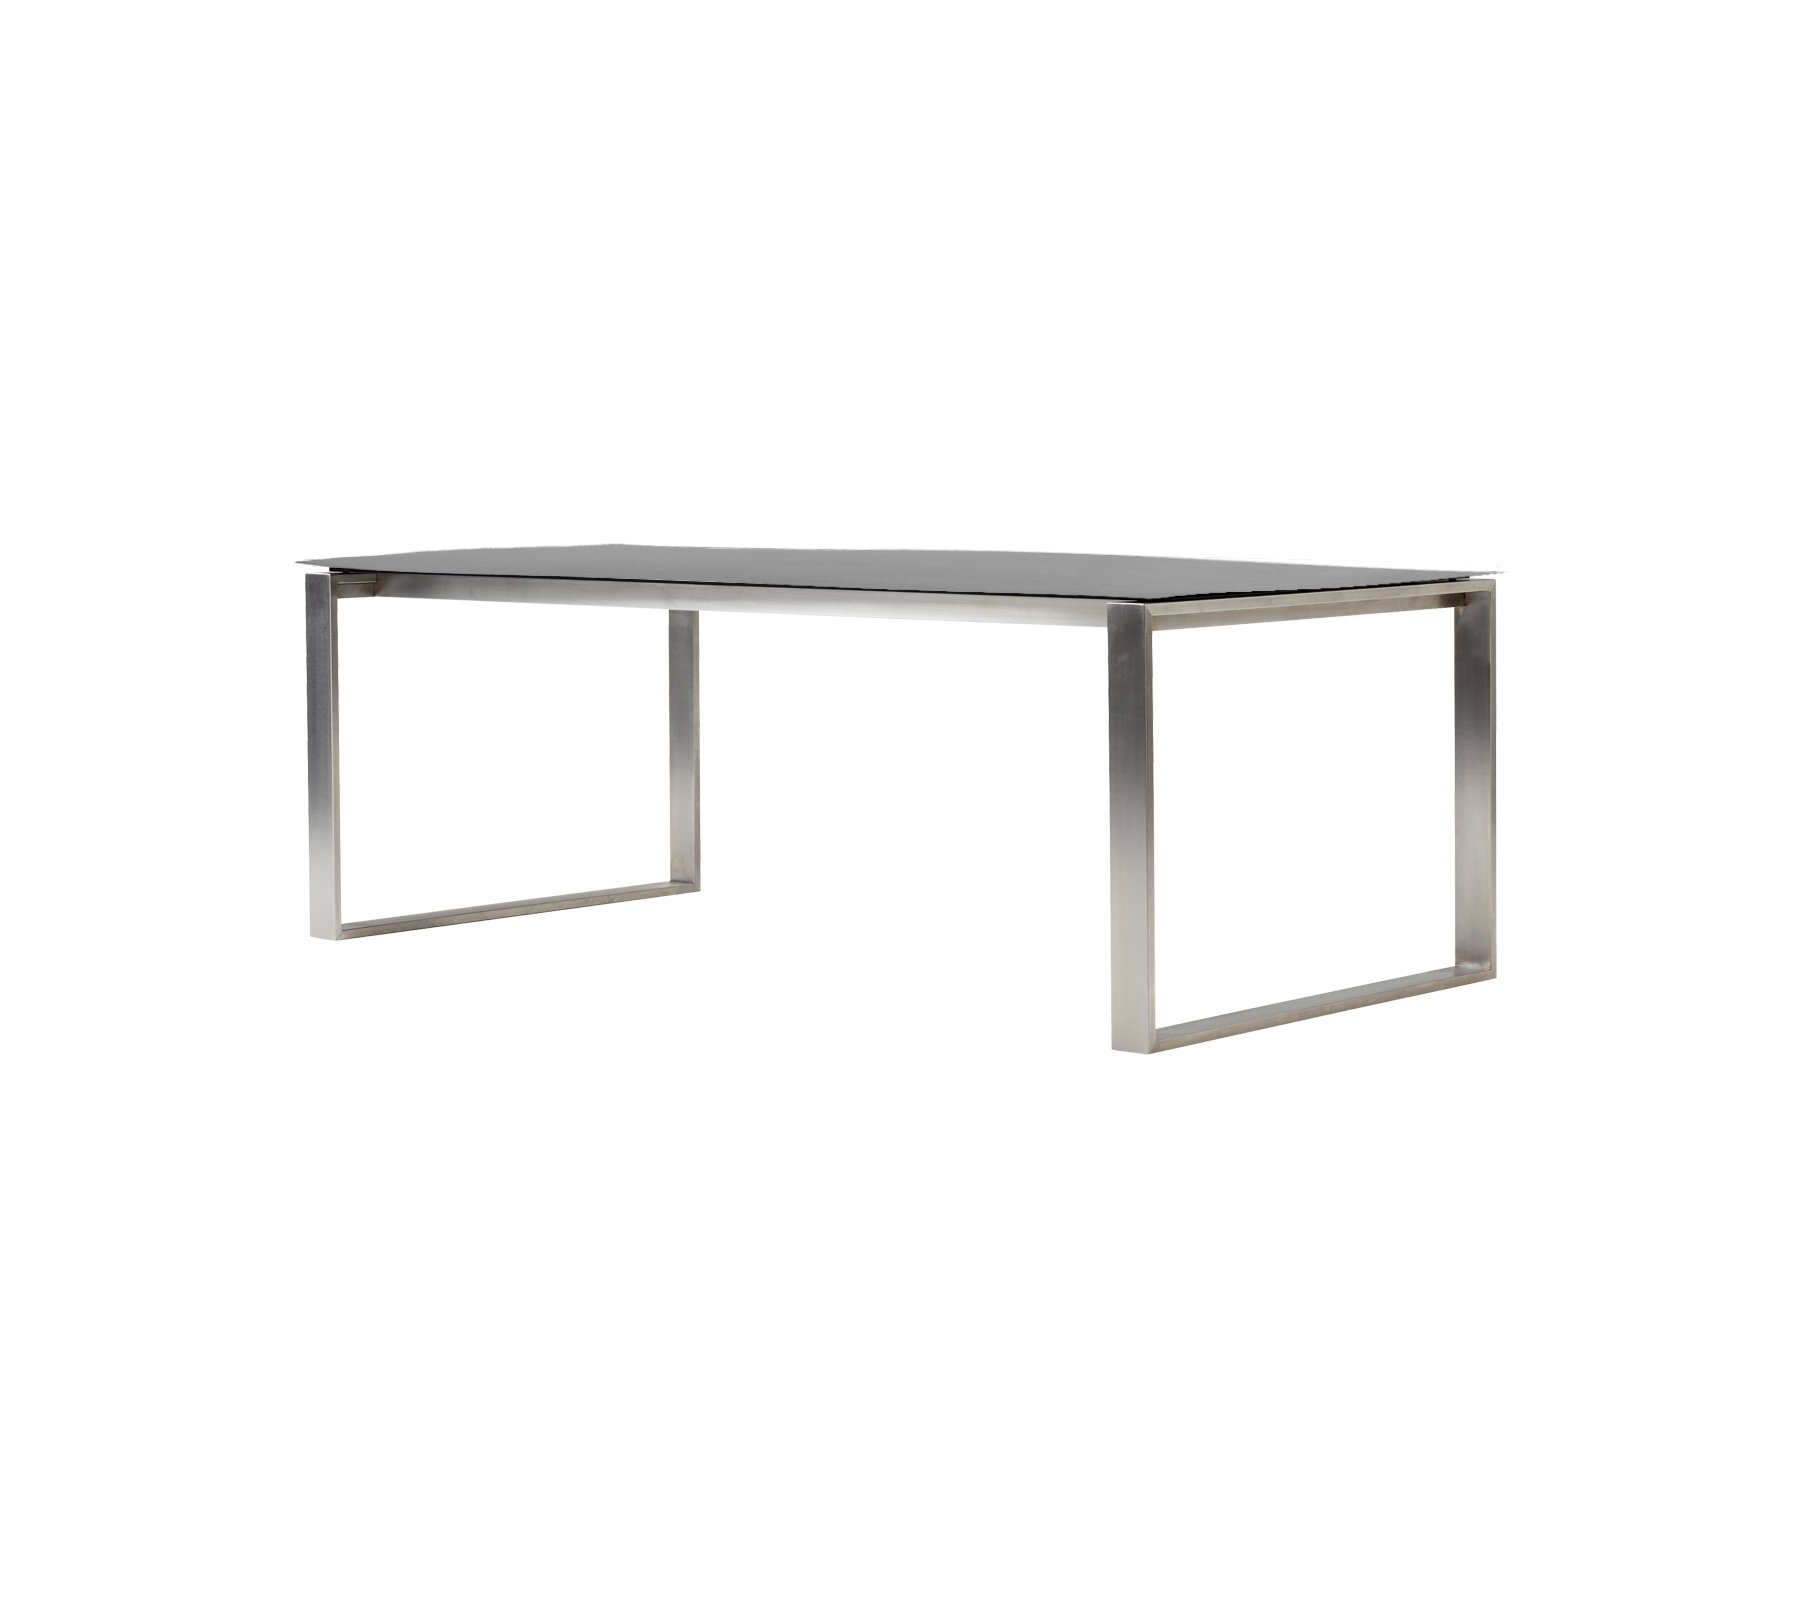 Edge Dining Table from Cane-line